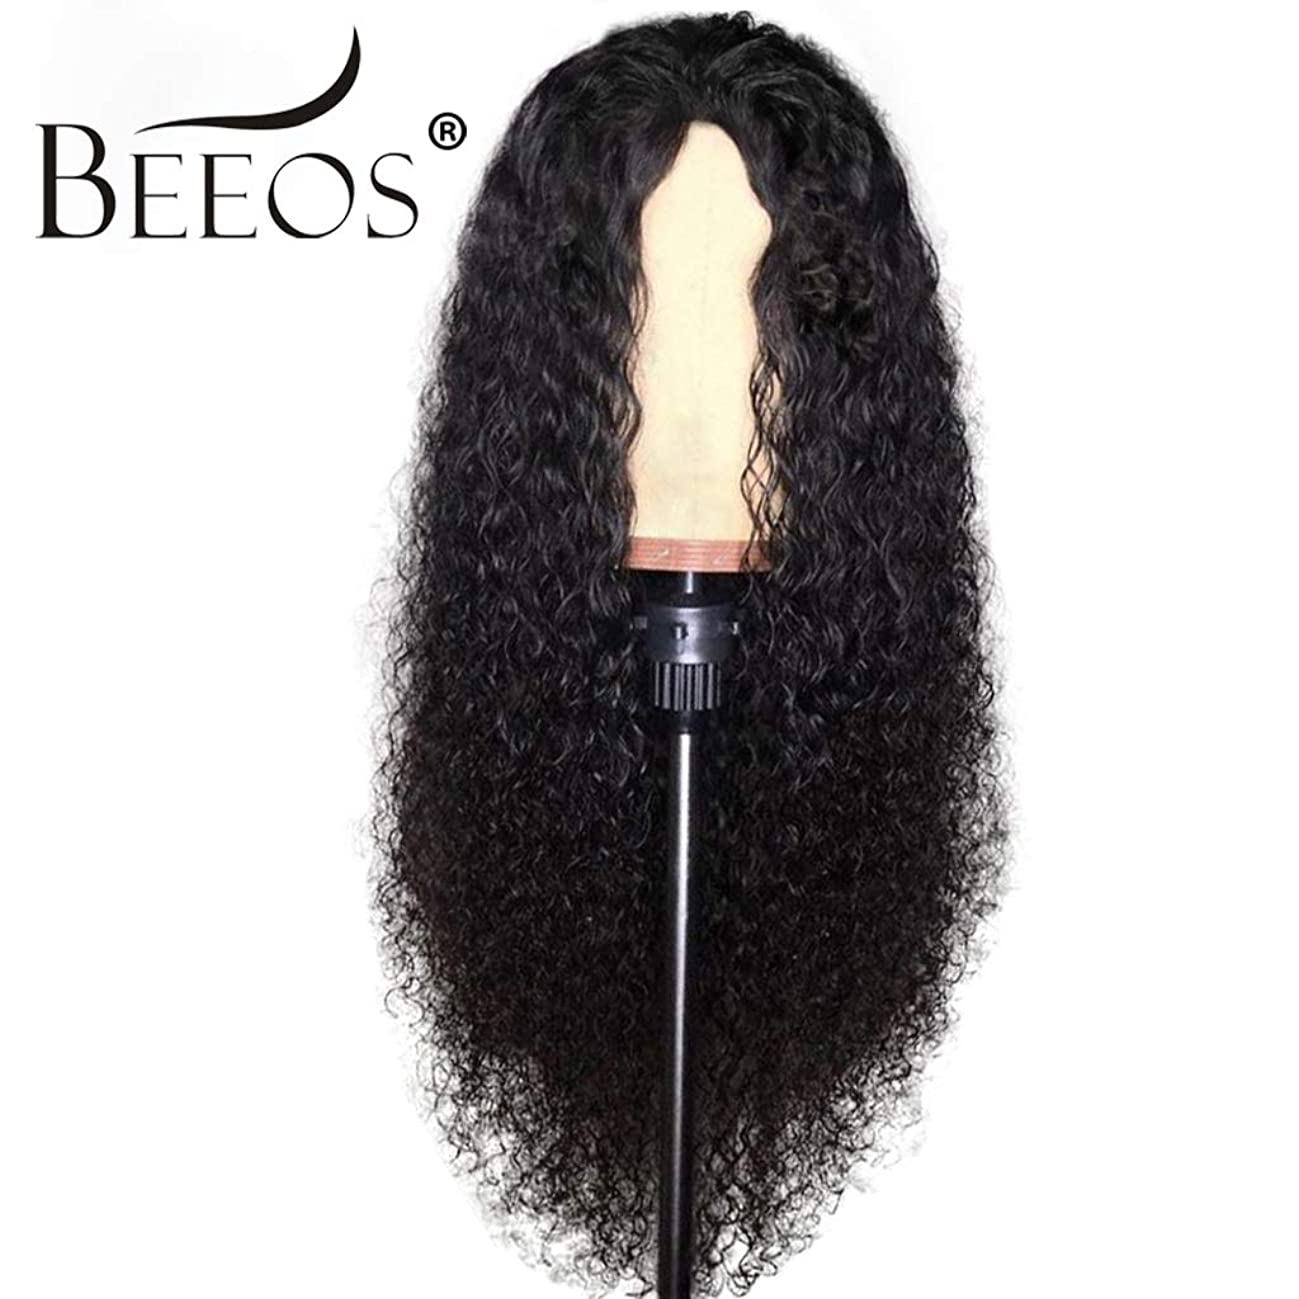 BEEOS Hair Curly 13x6 Lace Front Human Hair Wigs Pre Plucked With Baby Hair Brazilian Remy Hair Human Hiar Wigs, 20inch